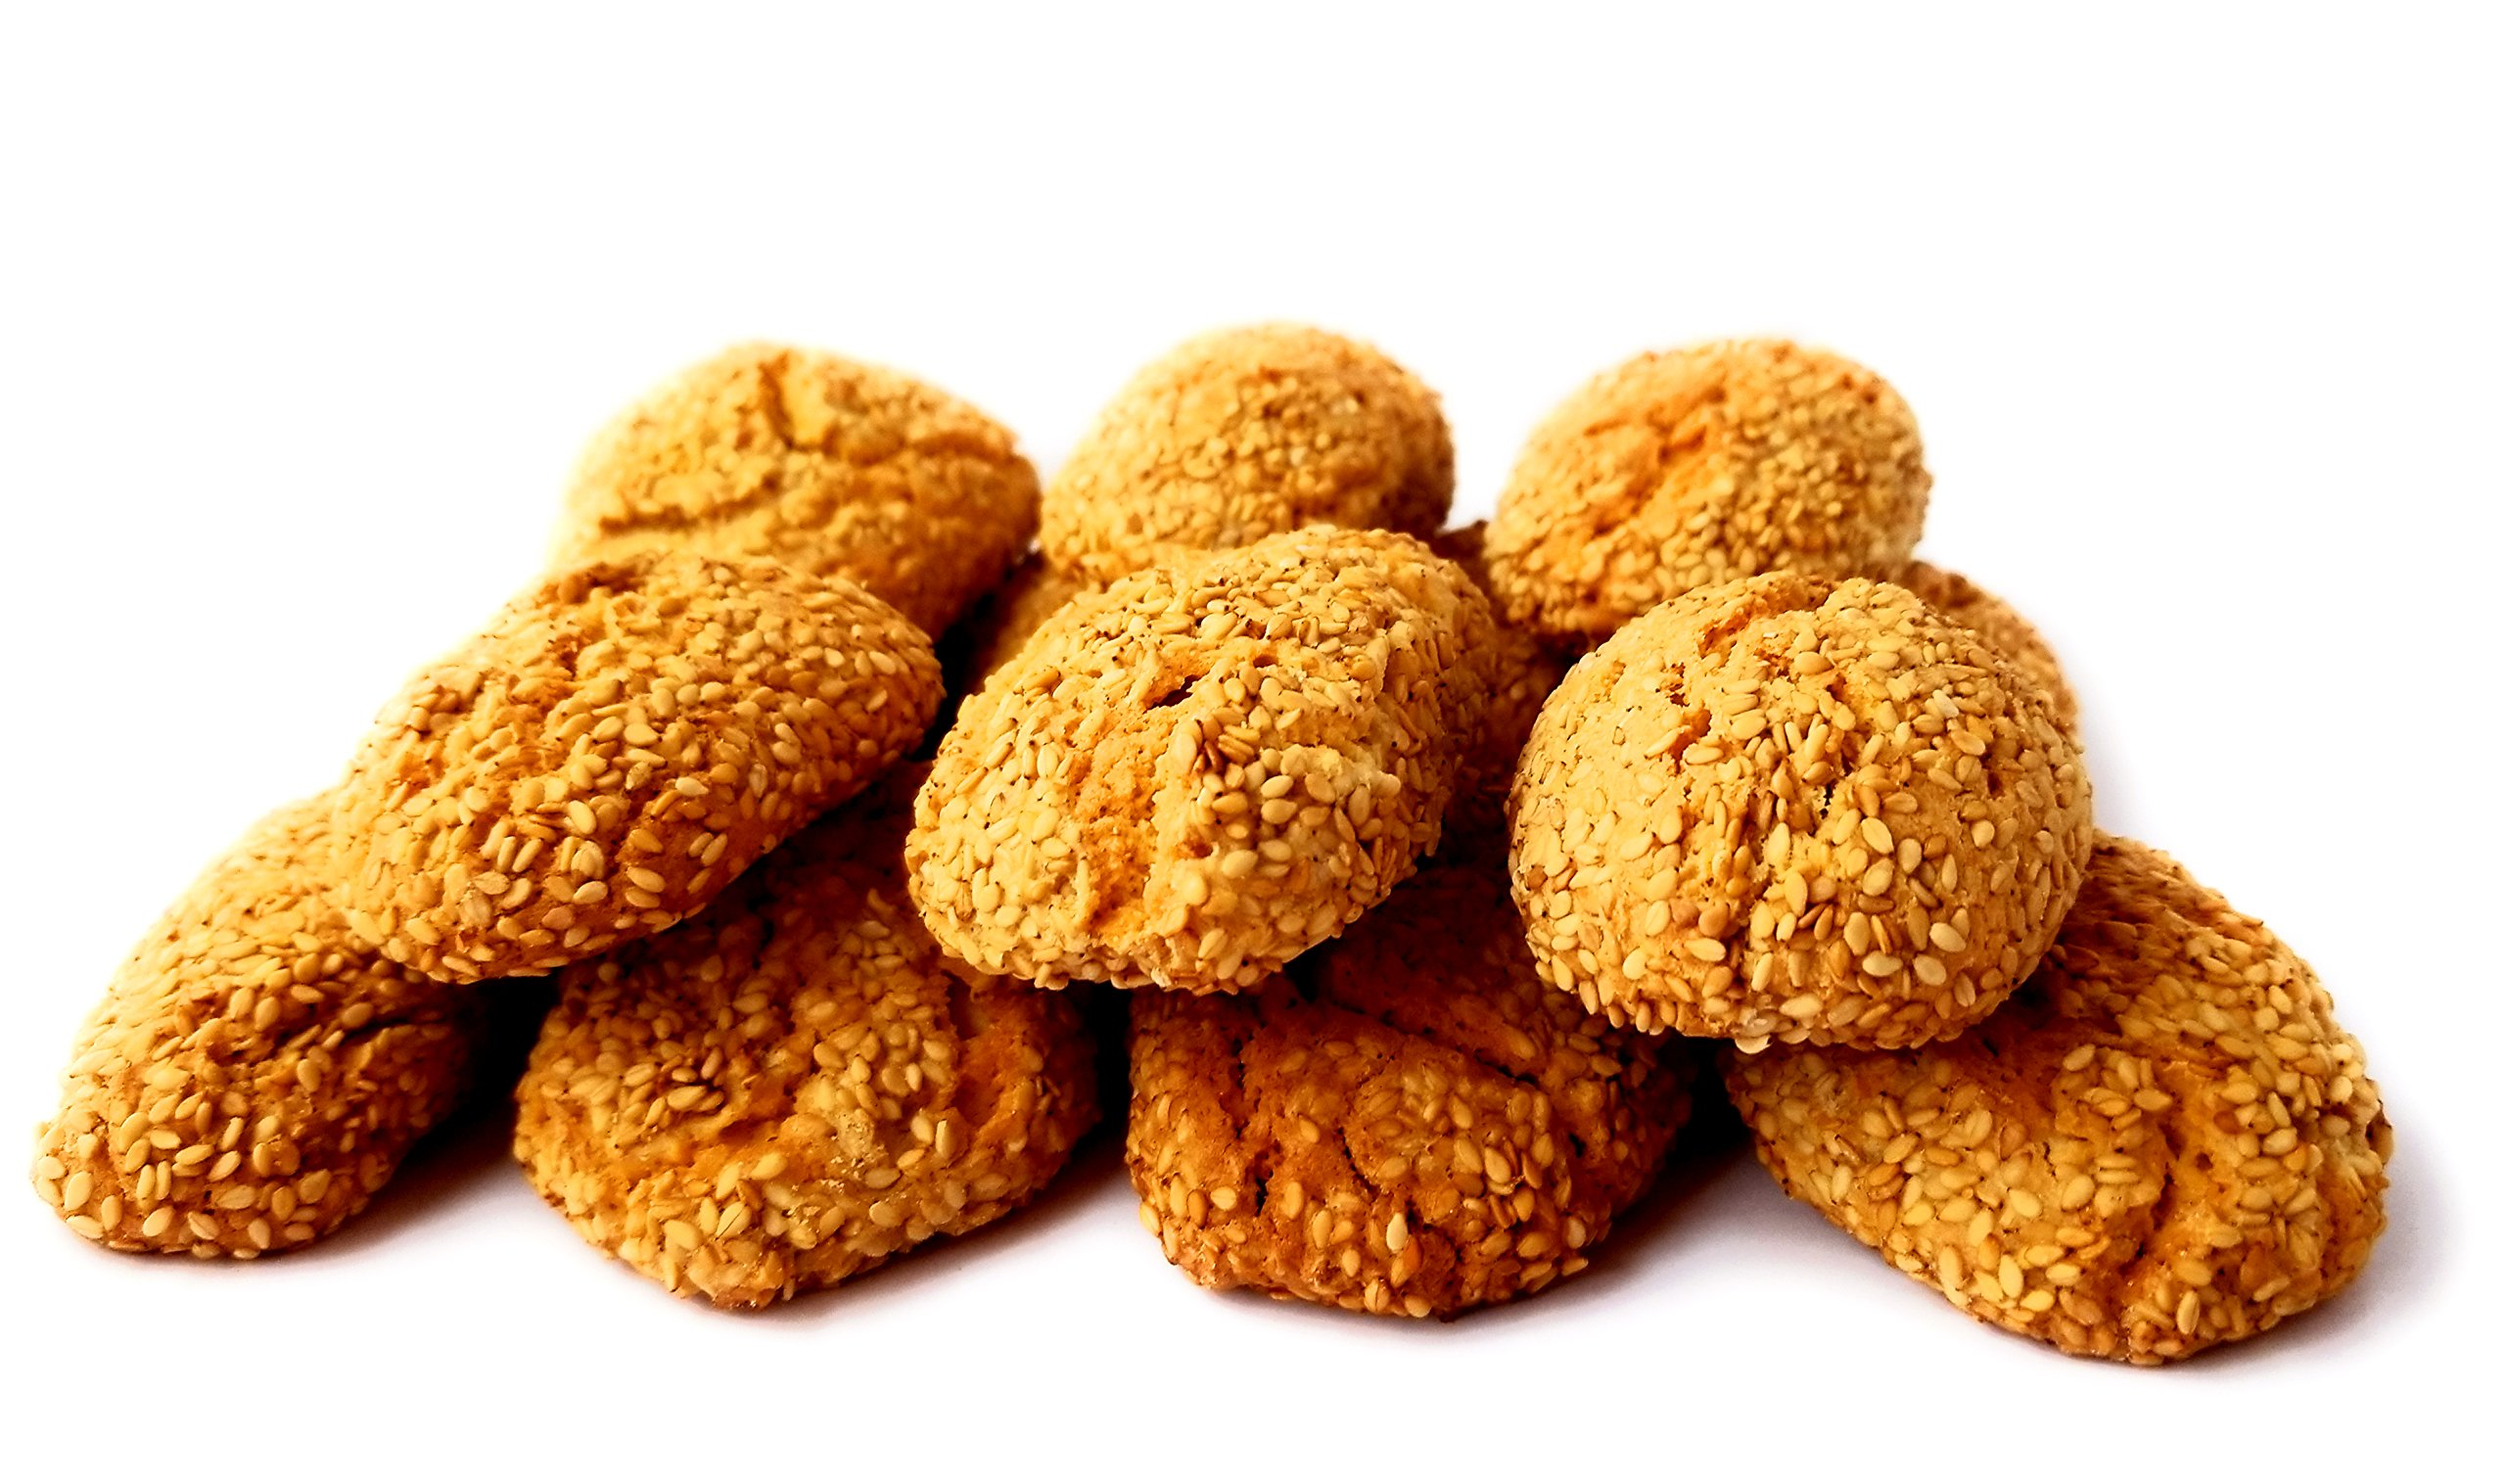 Frank and Sal Bakery: All Natural Italian Sesame Cookies 1 Pound Baked Fresh Daily - Biscotti Di Regina